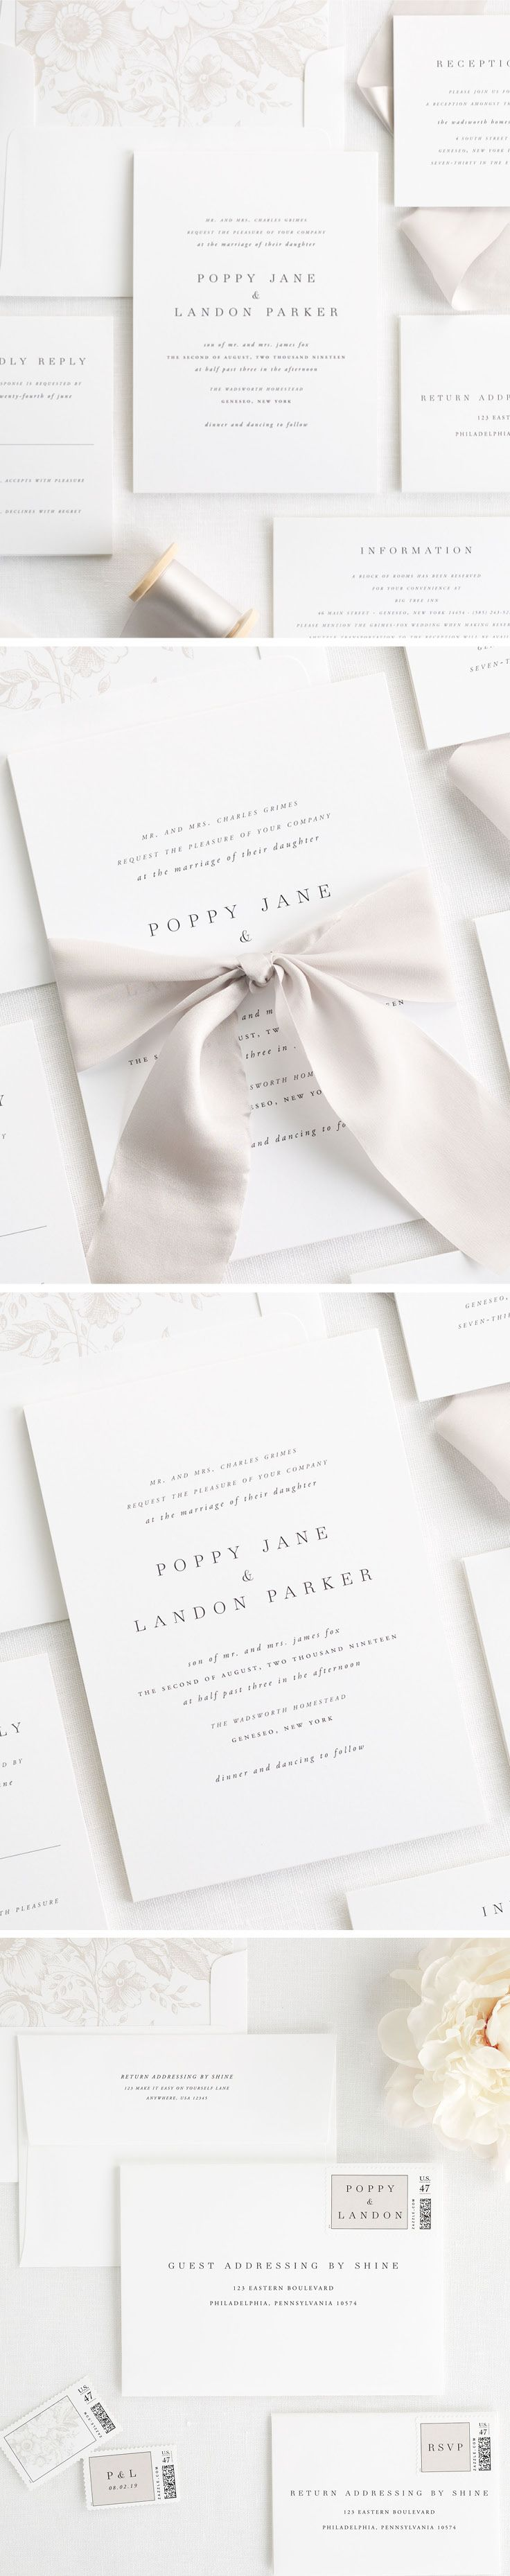 Poppy Ribbon Wedding Invitations | Ink color, Minimalist design and ...